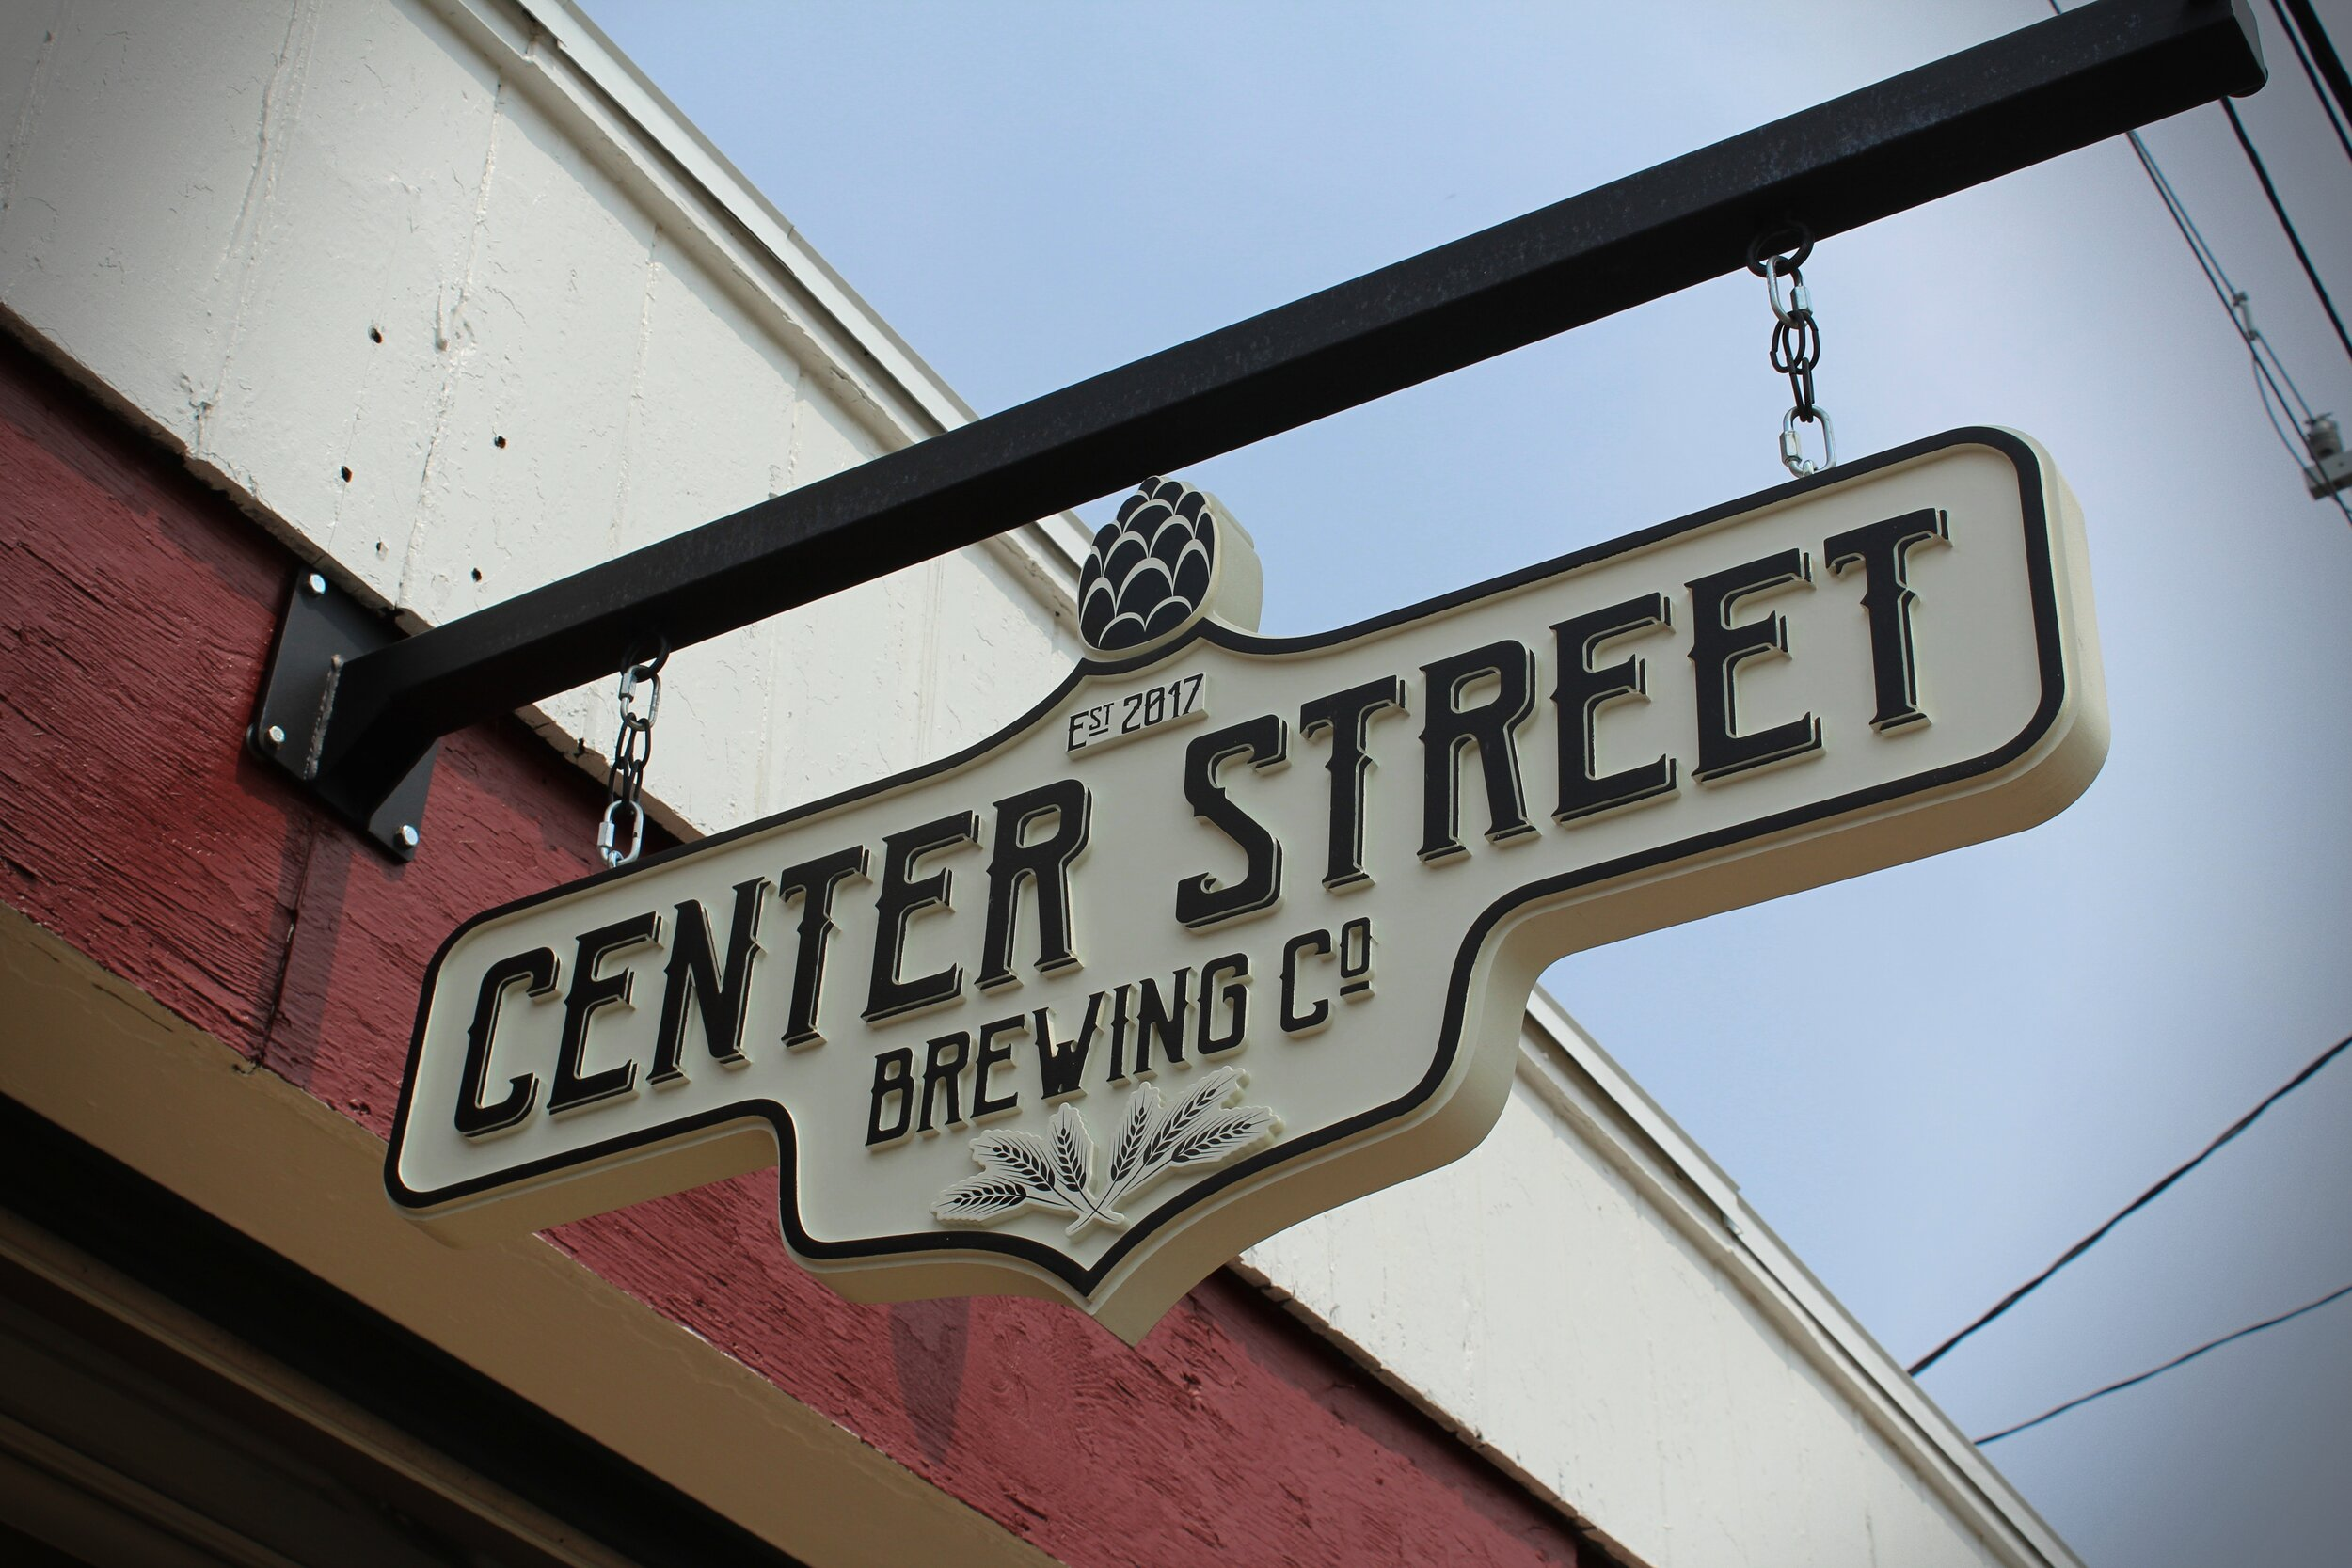 Center Street Breweing